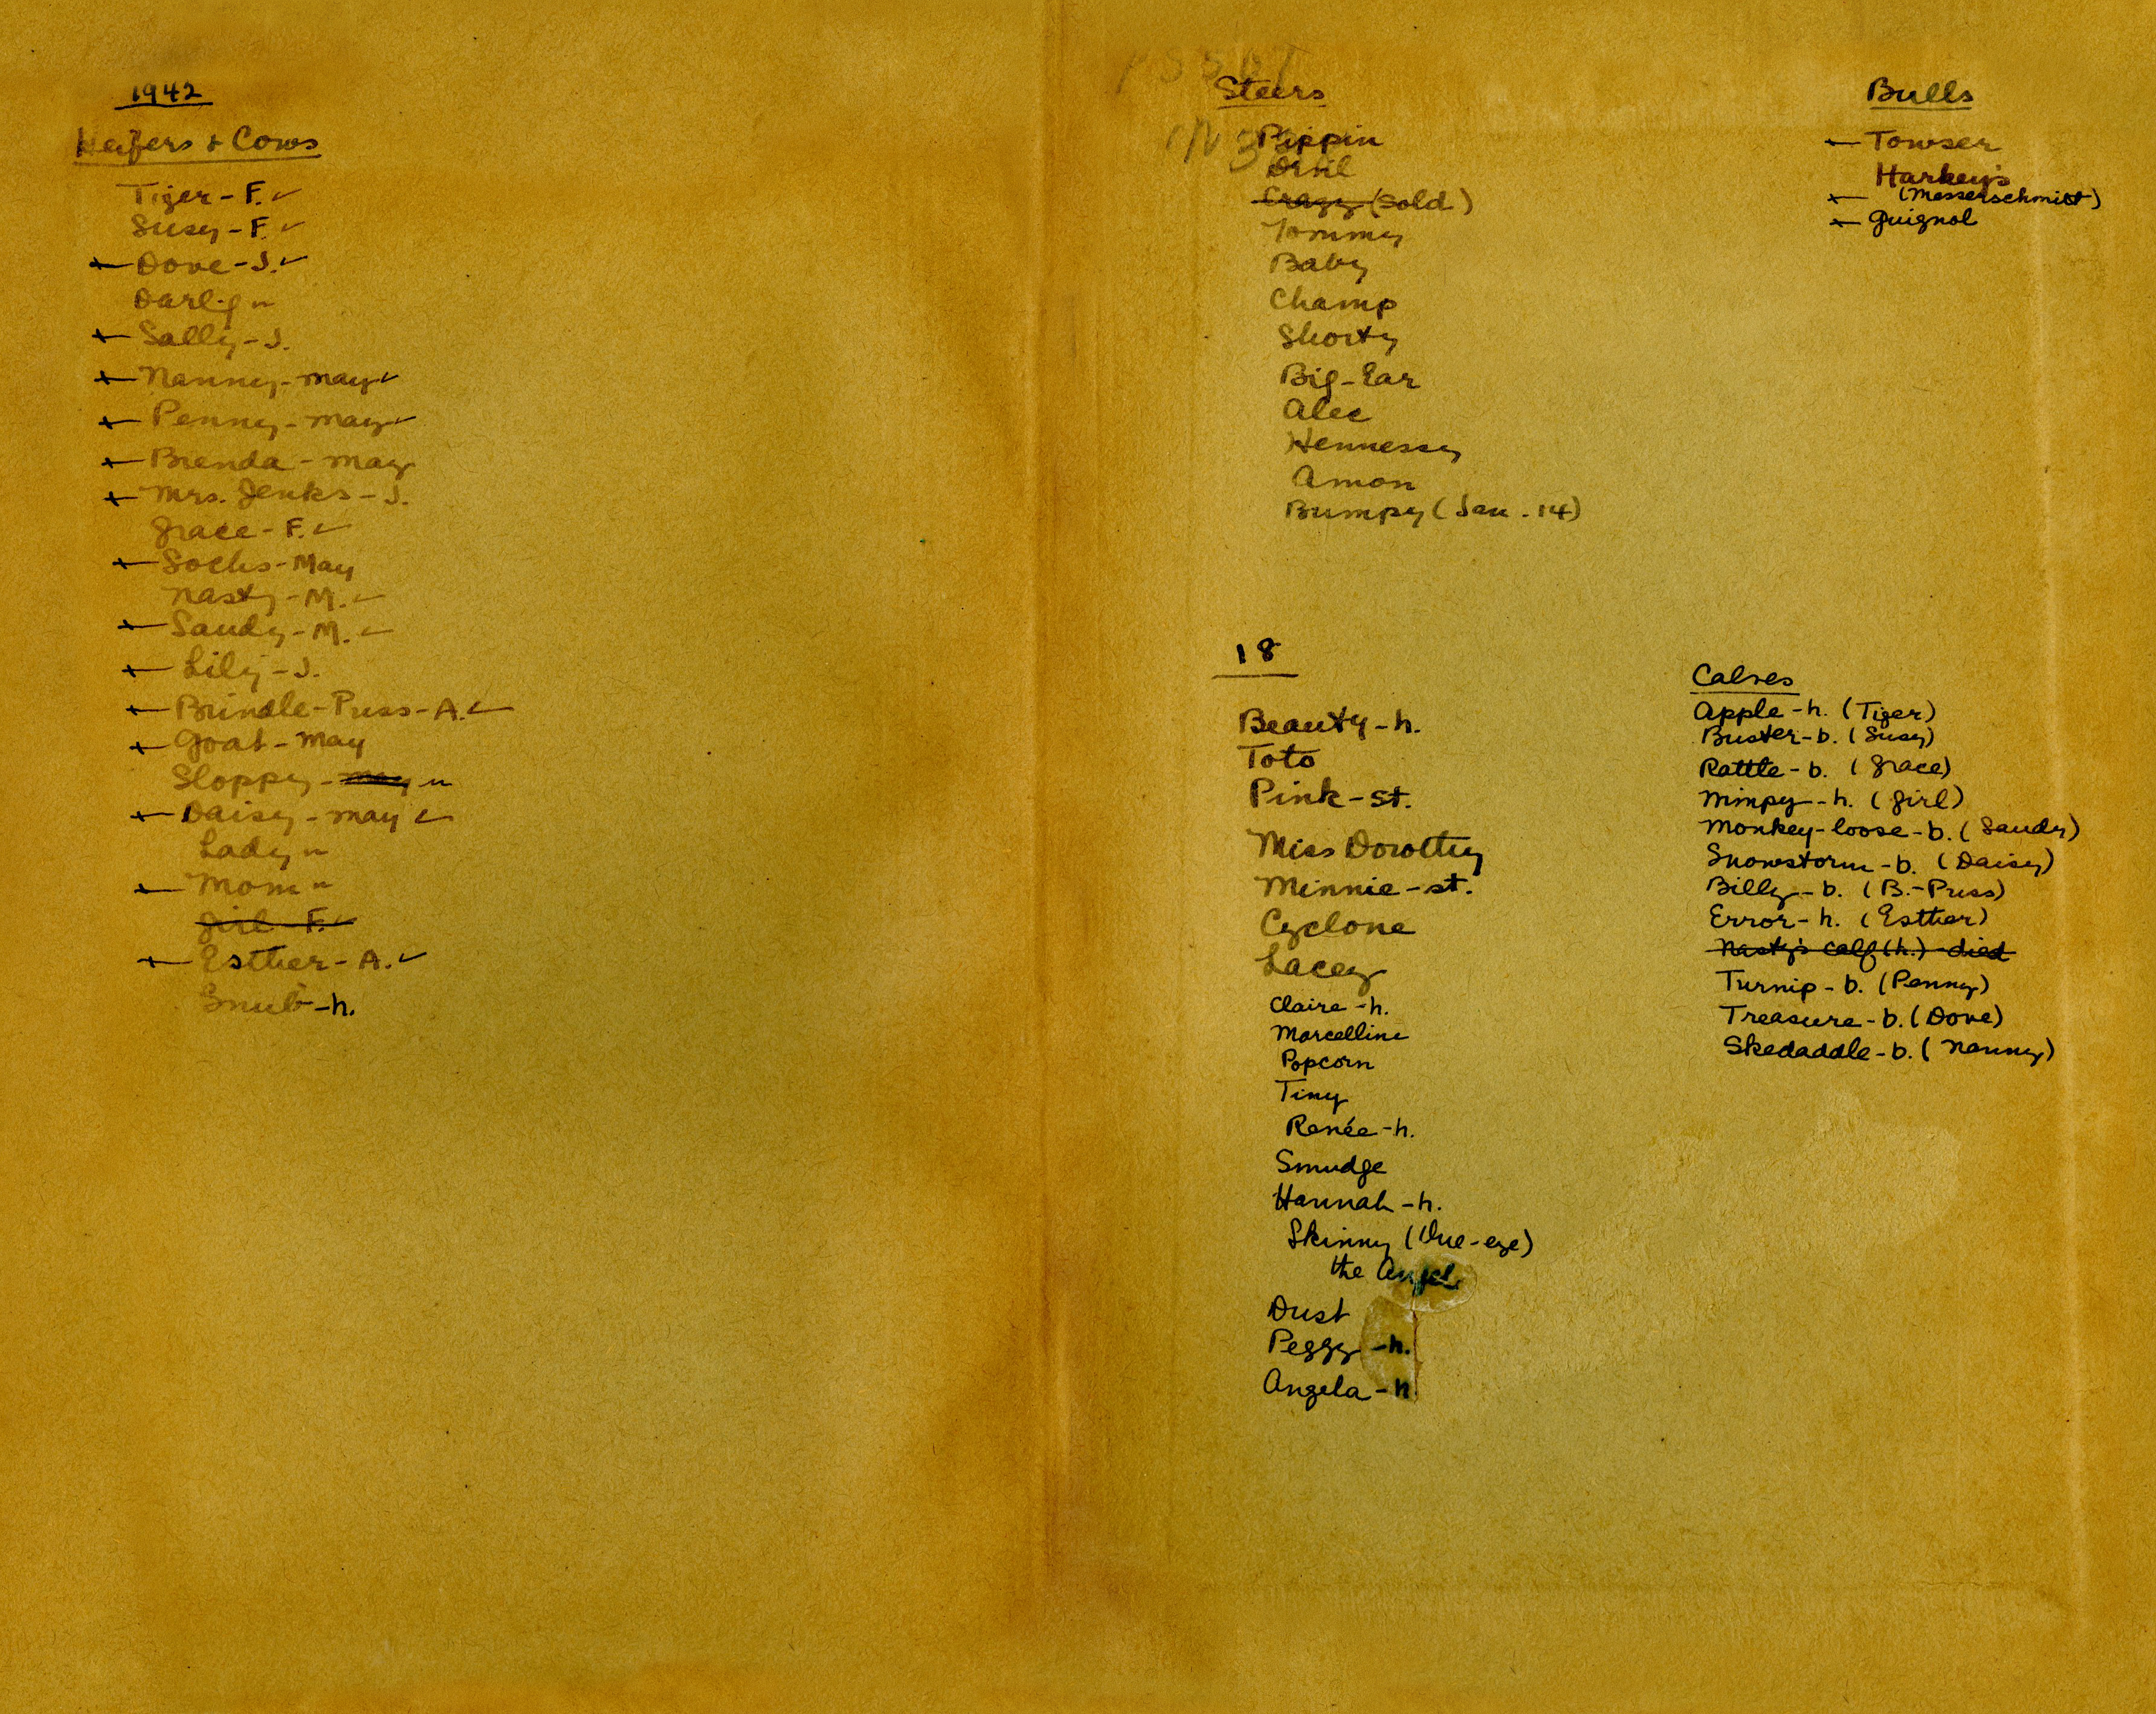 Endsheets of Americans Abroad with cow list